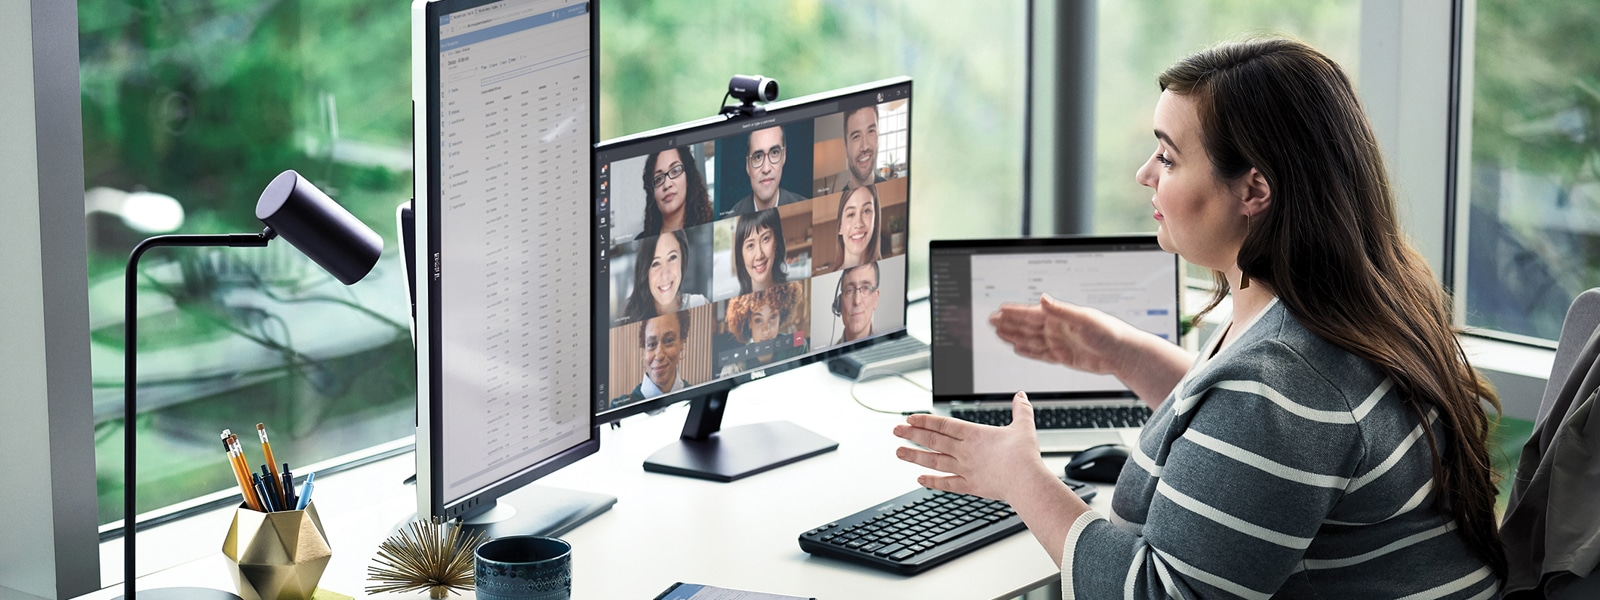 A person on a Teams video call with four other participants.